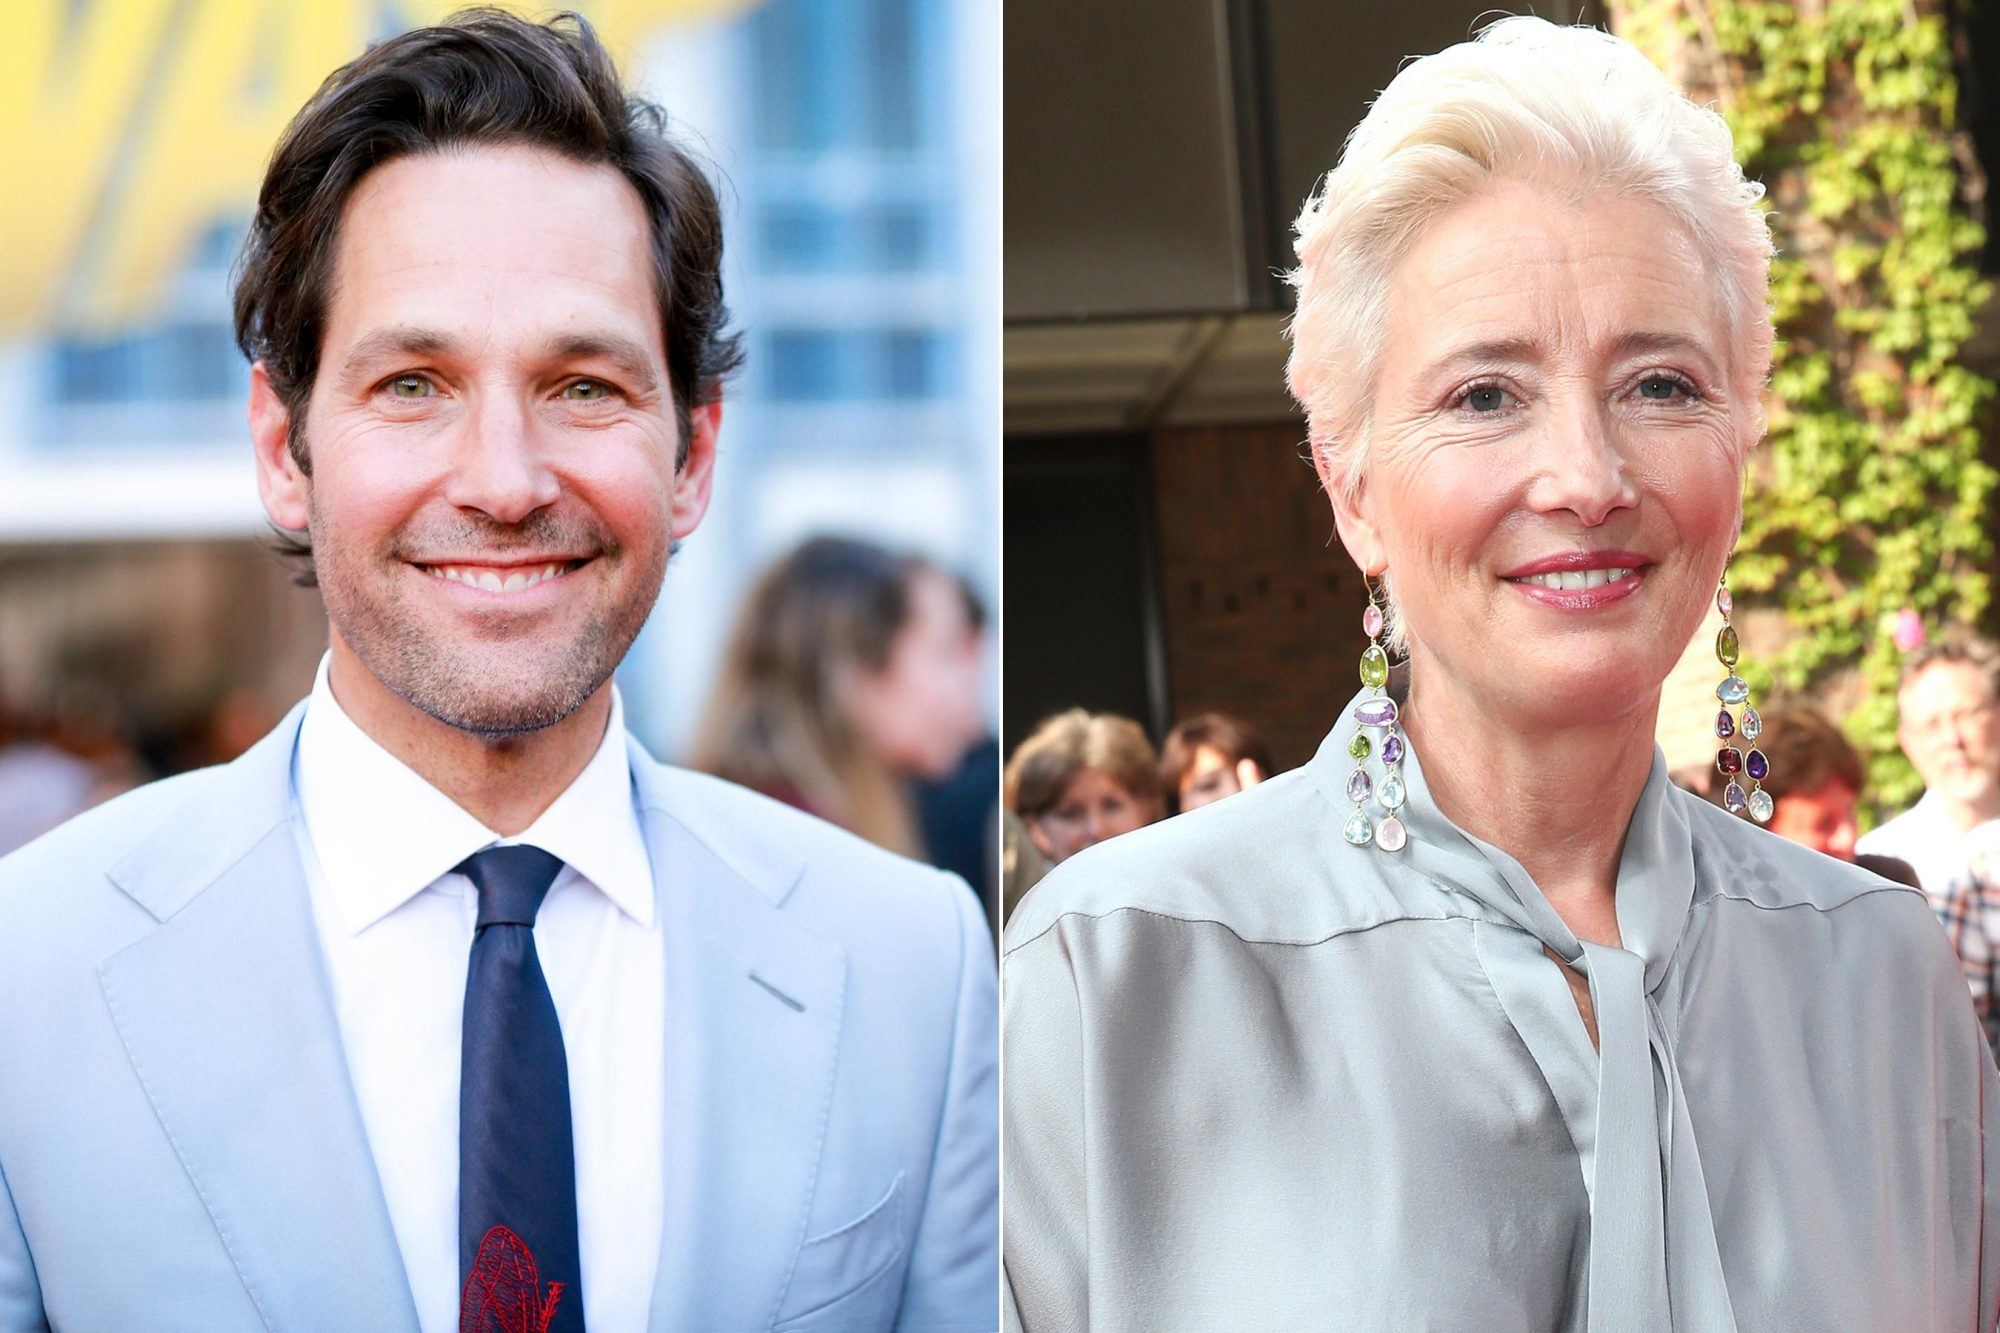 Paul Rudd attends the premiere of Disney And Marvel's 'Ant-Man And The Wasp' on June 25, 2018 in Hollywood, California. (Photo by Rich Fury/Getty Images) MUNICH, GERMANY - JUNE 29: Emma Thompson arrives at the Cine Merit Award Gala during the Munich Film Festival 2018 at Gasteig on June 29, 2018 in Munich, Germany. (Photo by Gisela Schober/Getty Images)